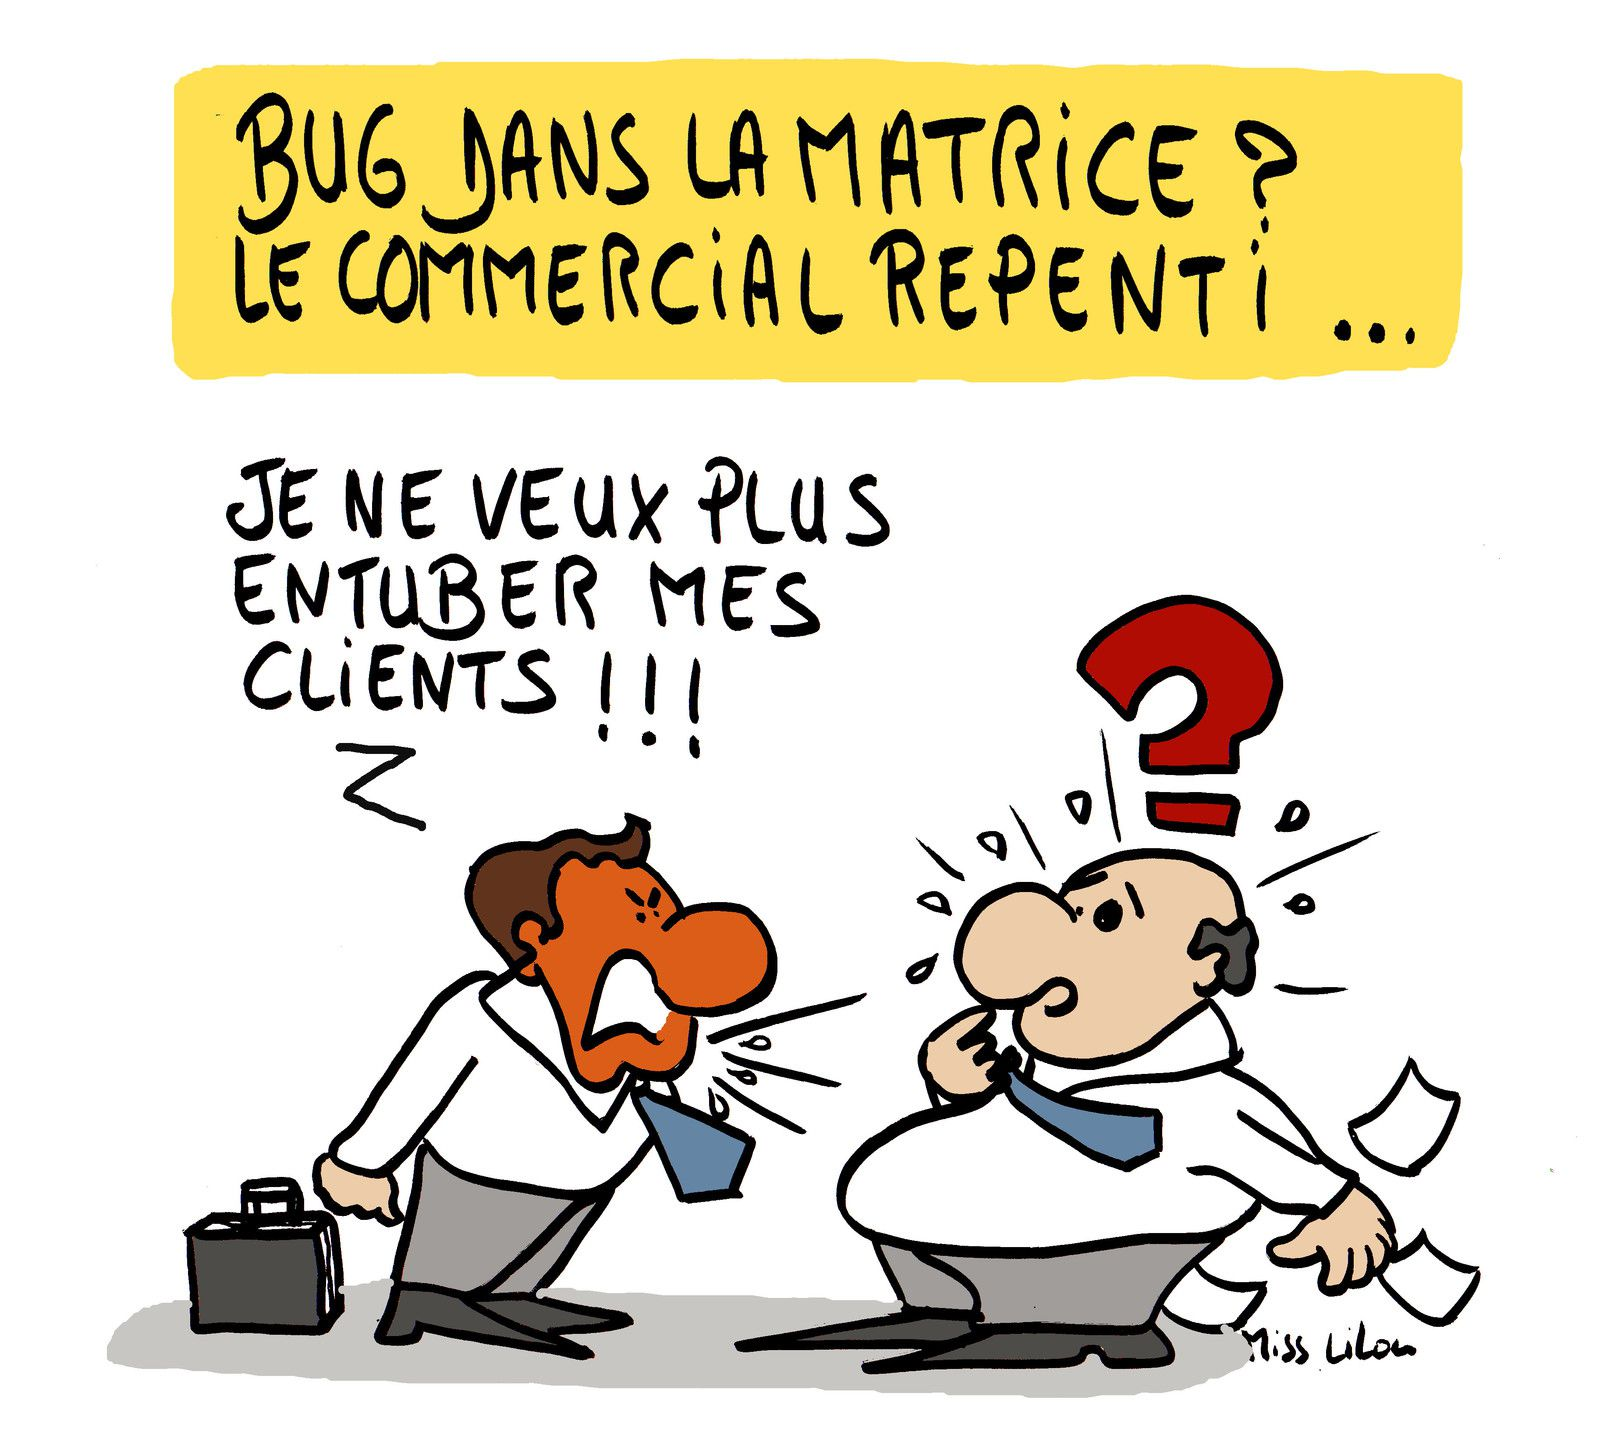 Bug commercial : le commercial repenti...